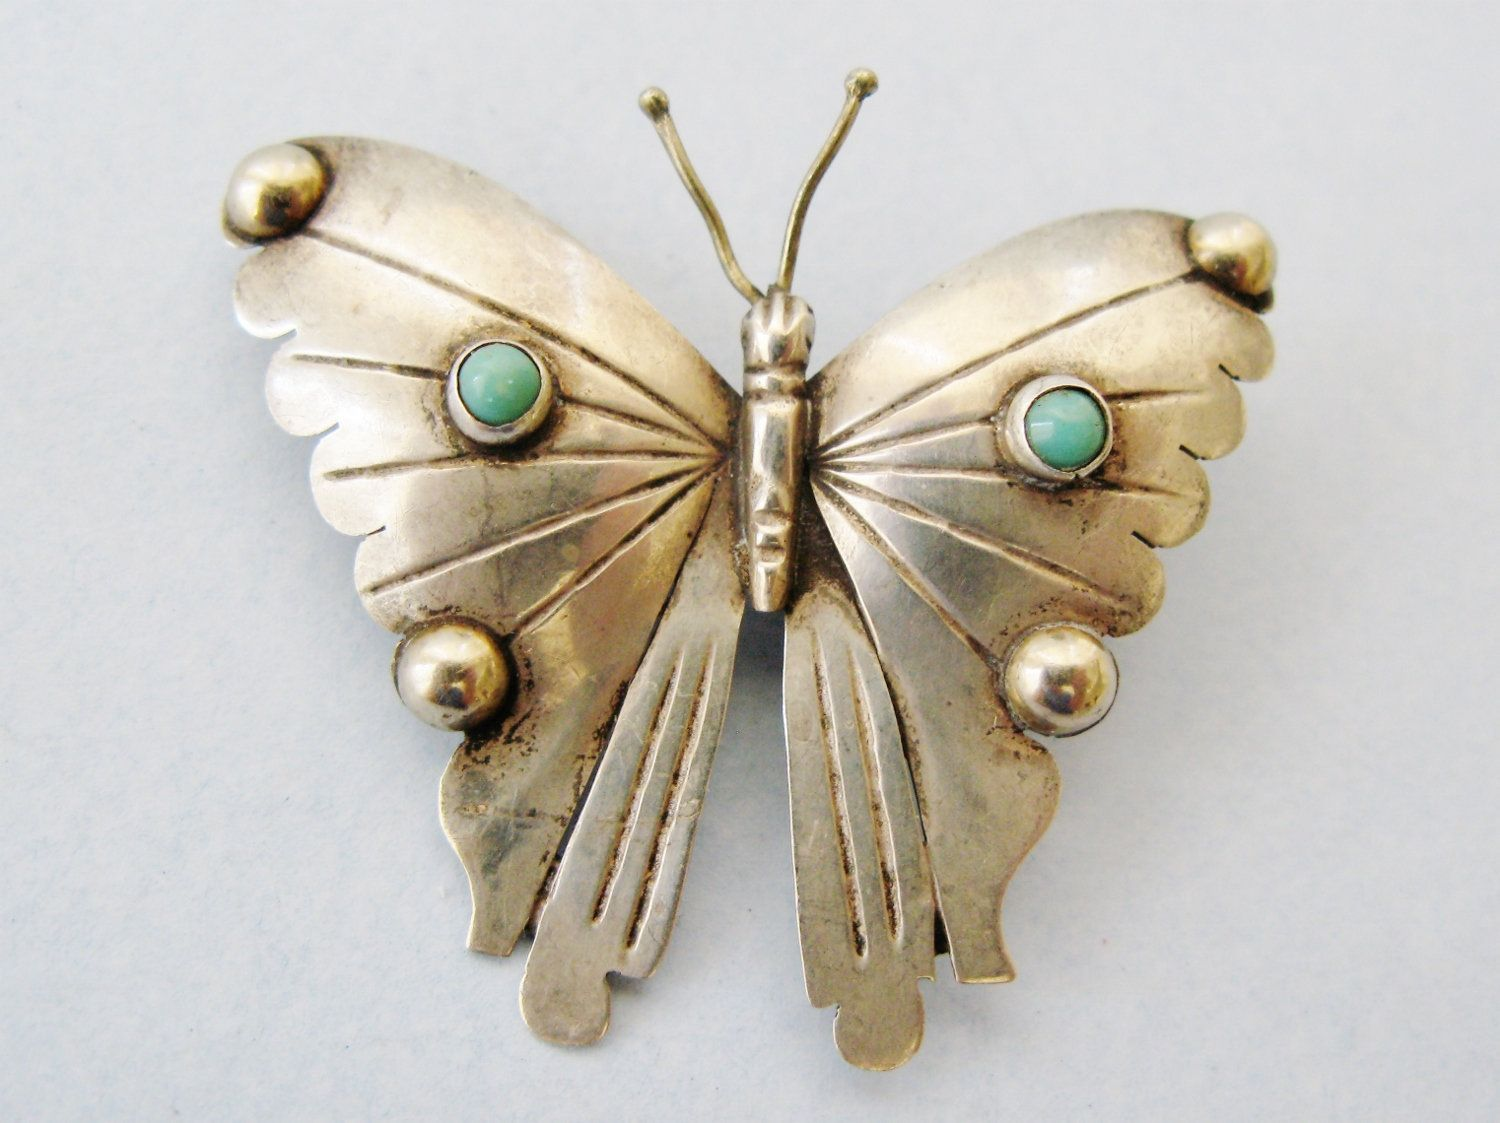 b281bf3cc19e1 Turquoise Sterling Silver Butterfly Brooch, Made In Mexico, Pre ...